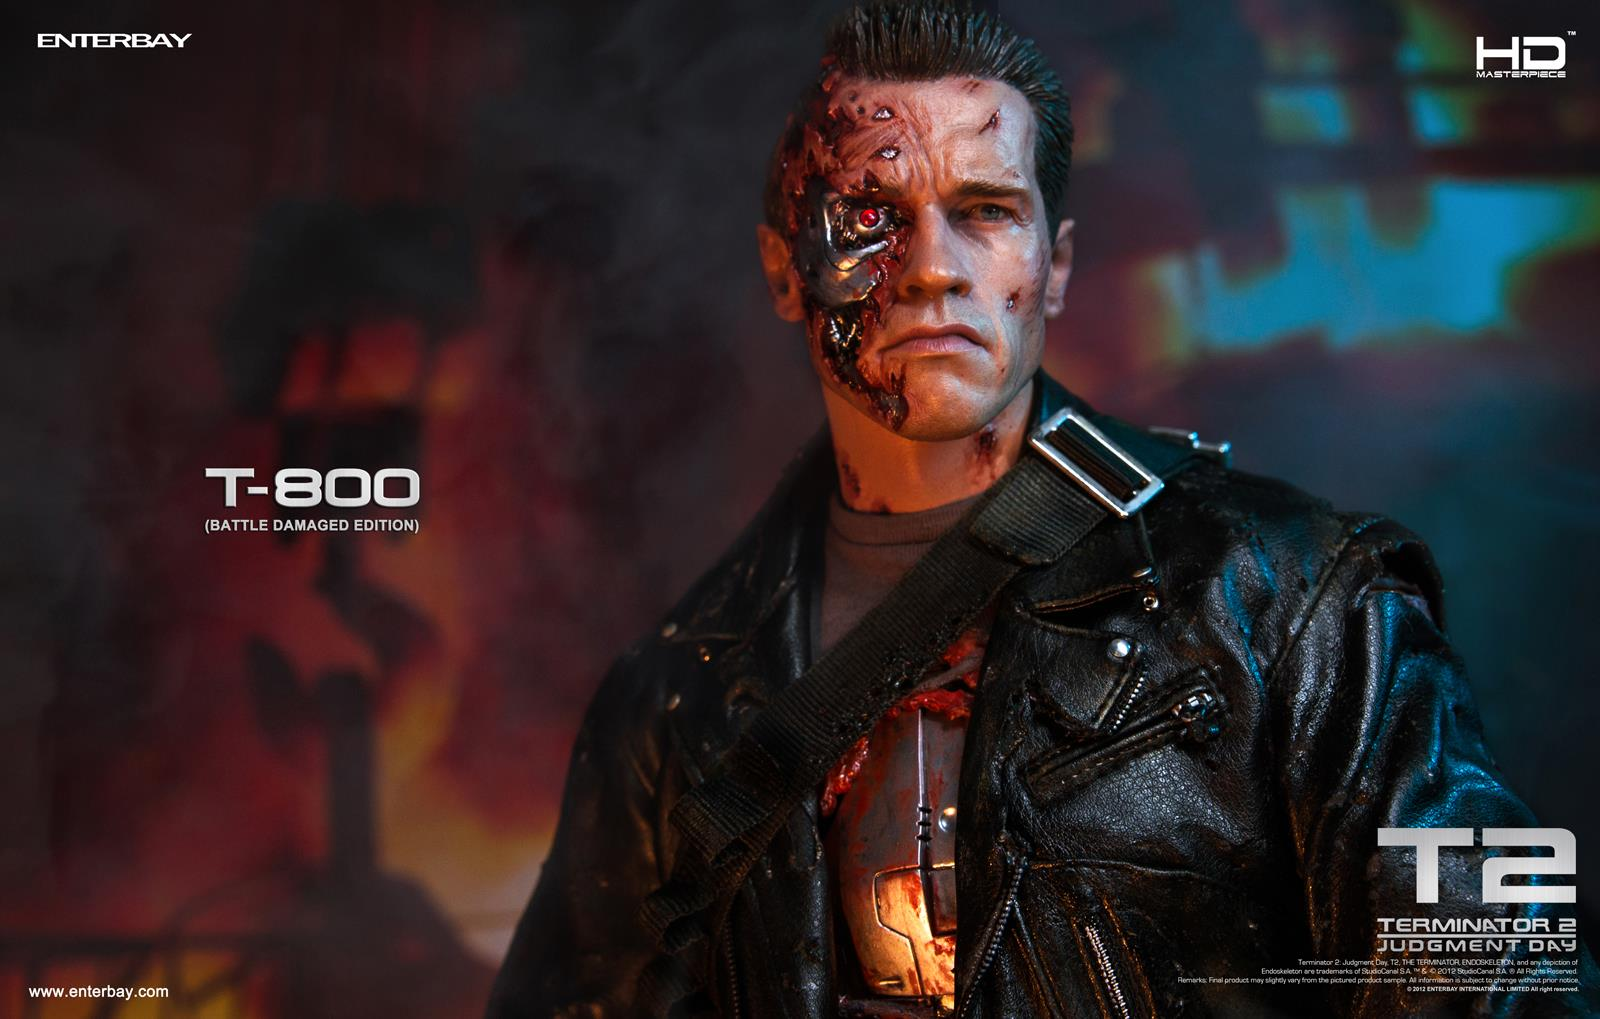 ... Wallpaper terminator 2: judgment day computer wallpapers, desktop